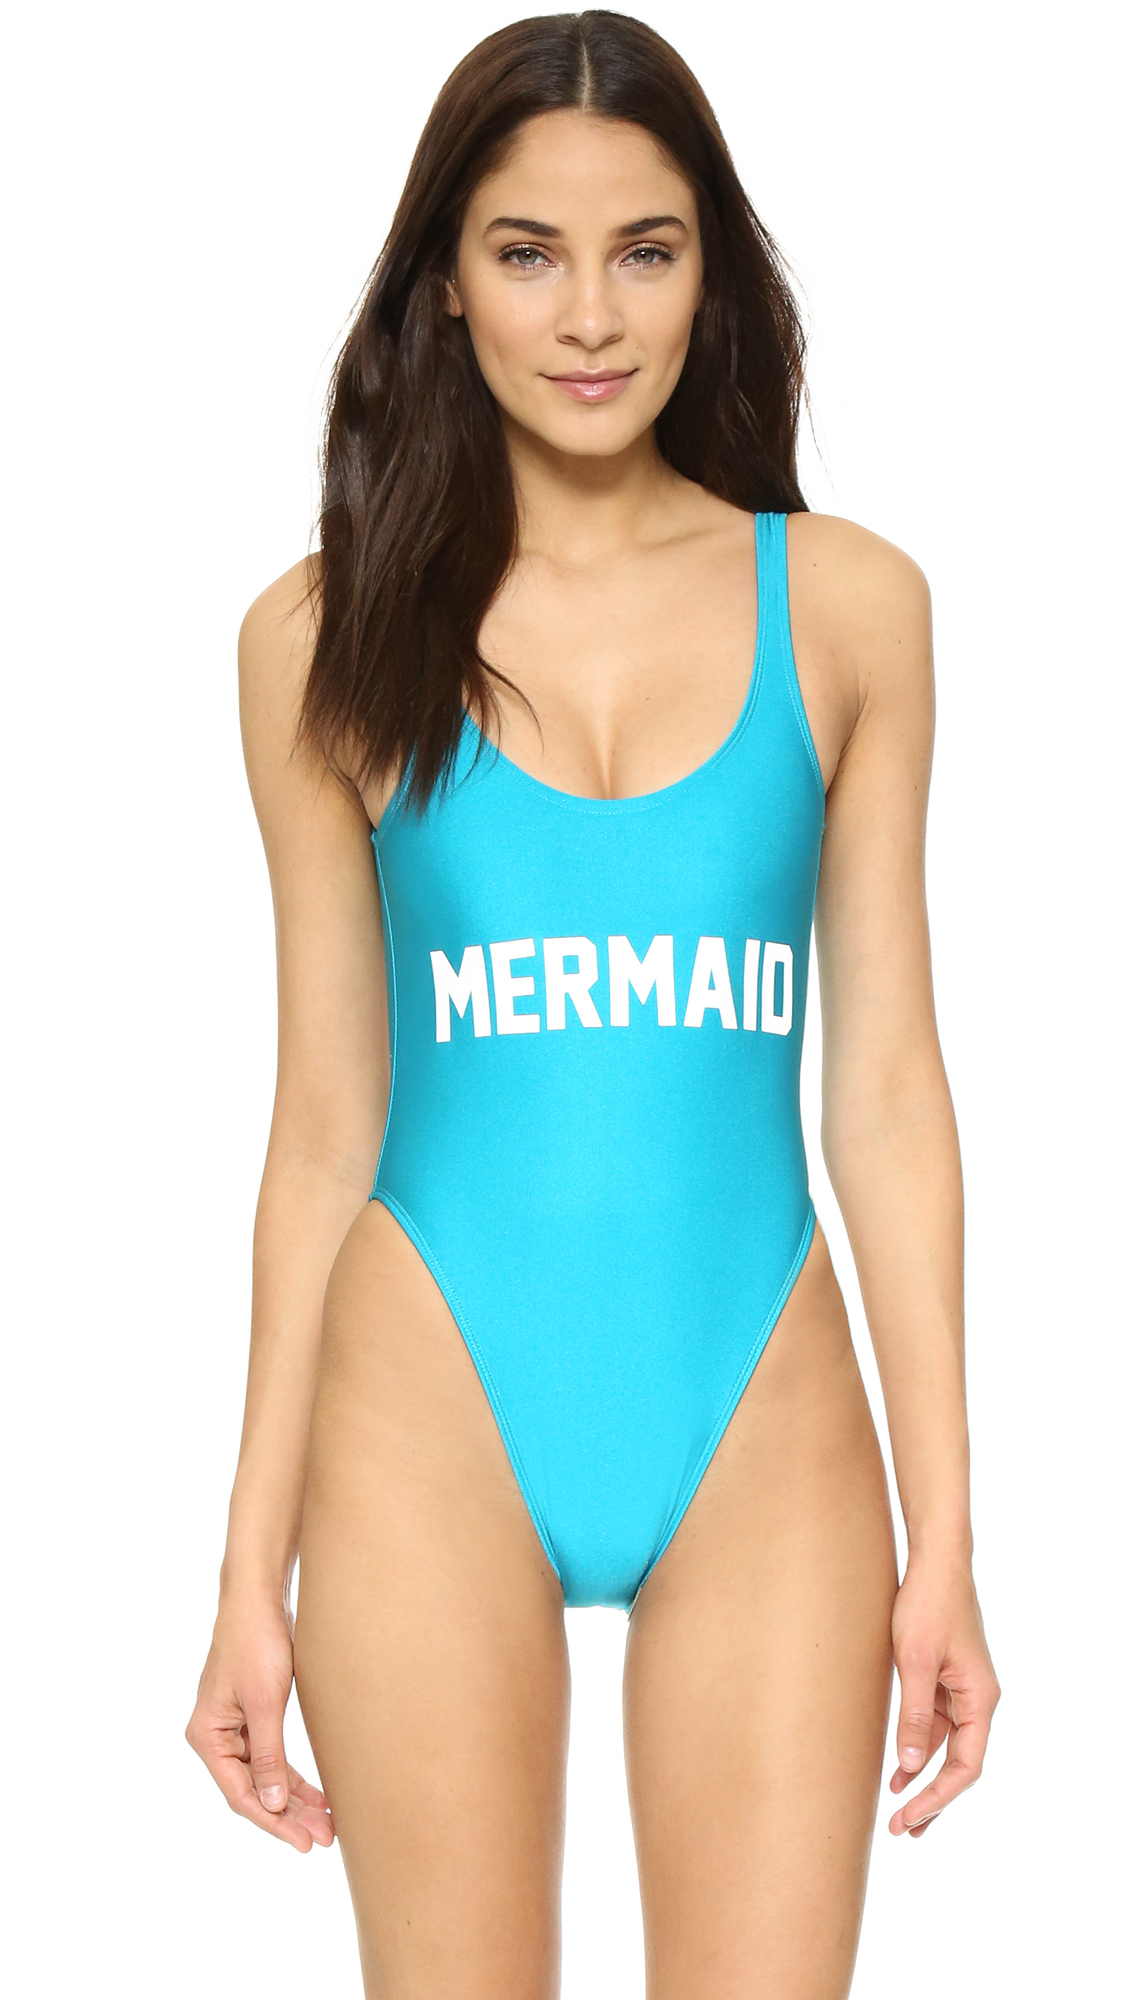 Private Party Mermaid One Piece Swimsuit